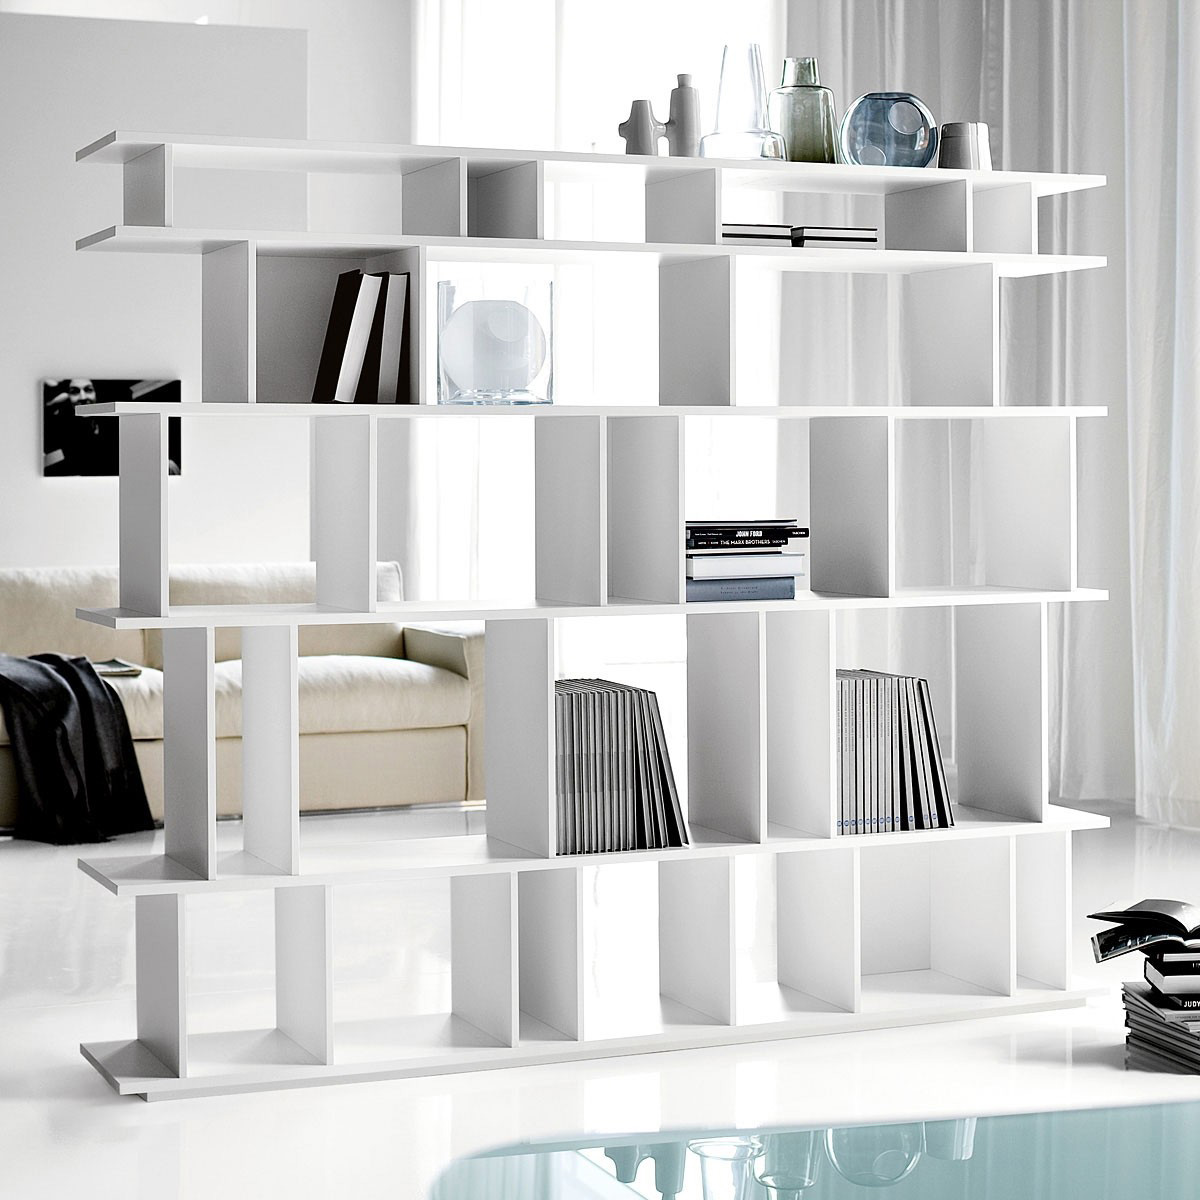 best room divider ideas to enrich your home with aesthetic | homesfeed